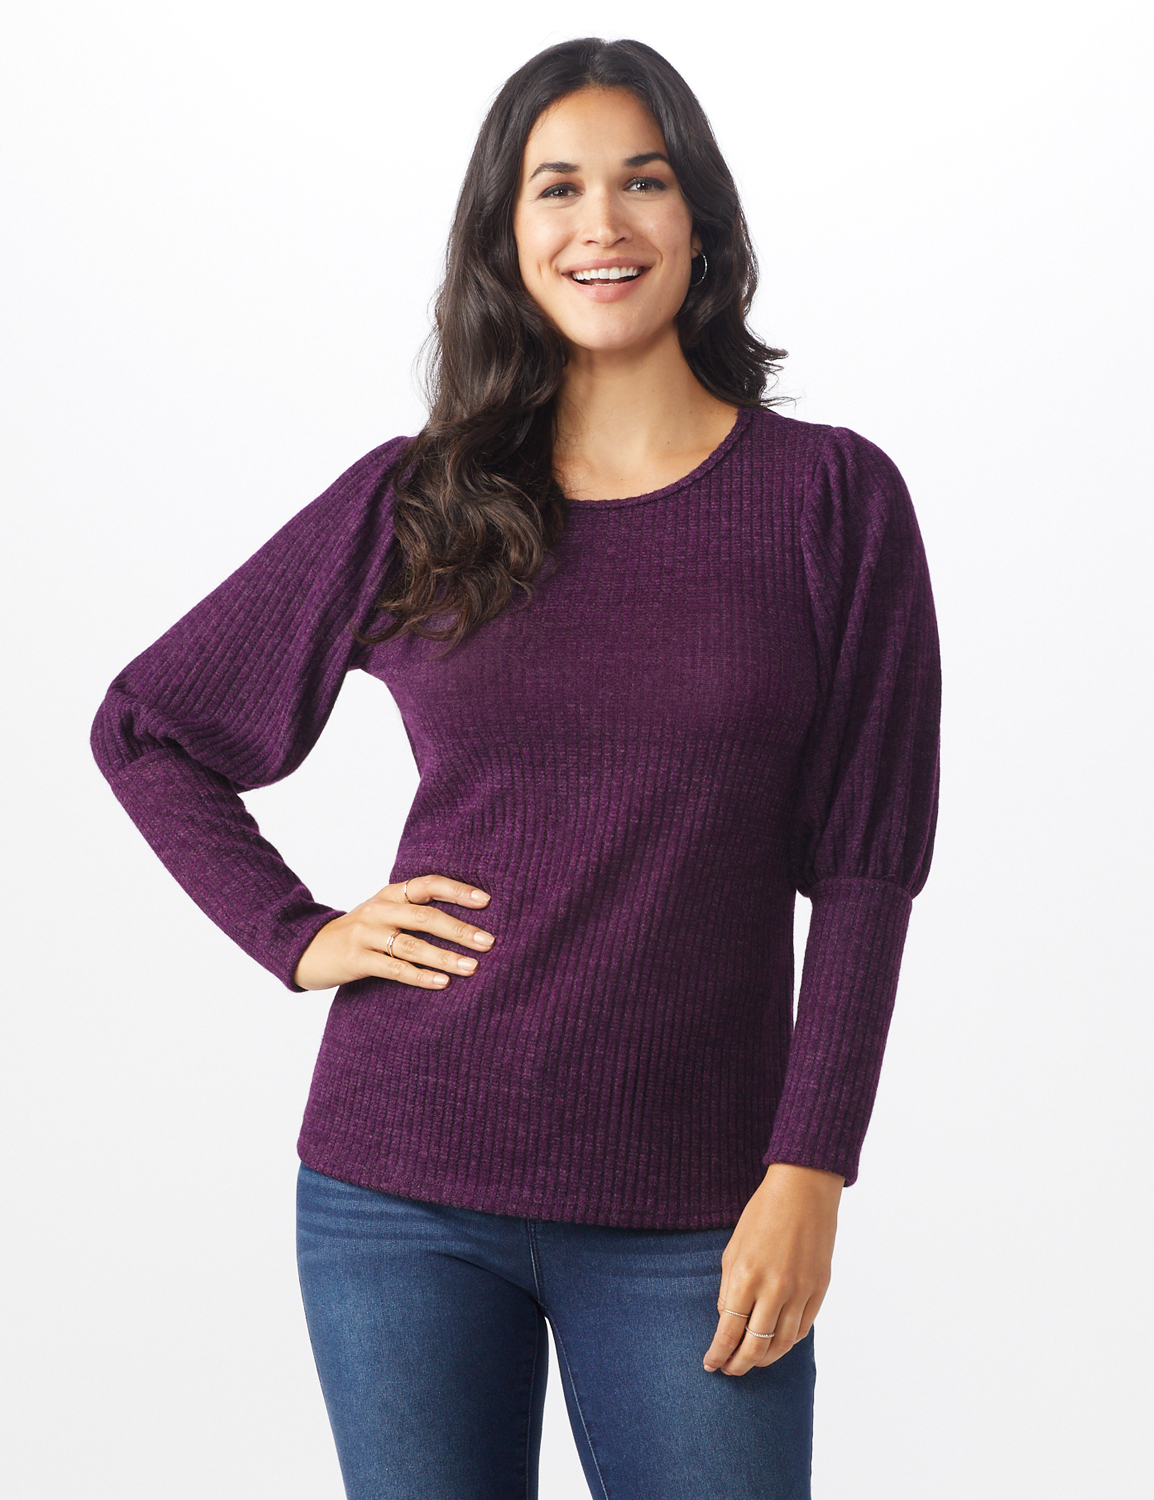 Puff Sleeve Hacci Rib Knit Top - Plum - Front